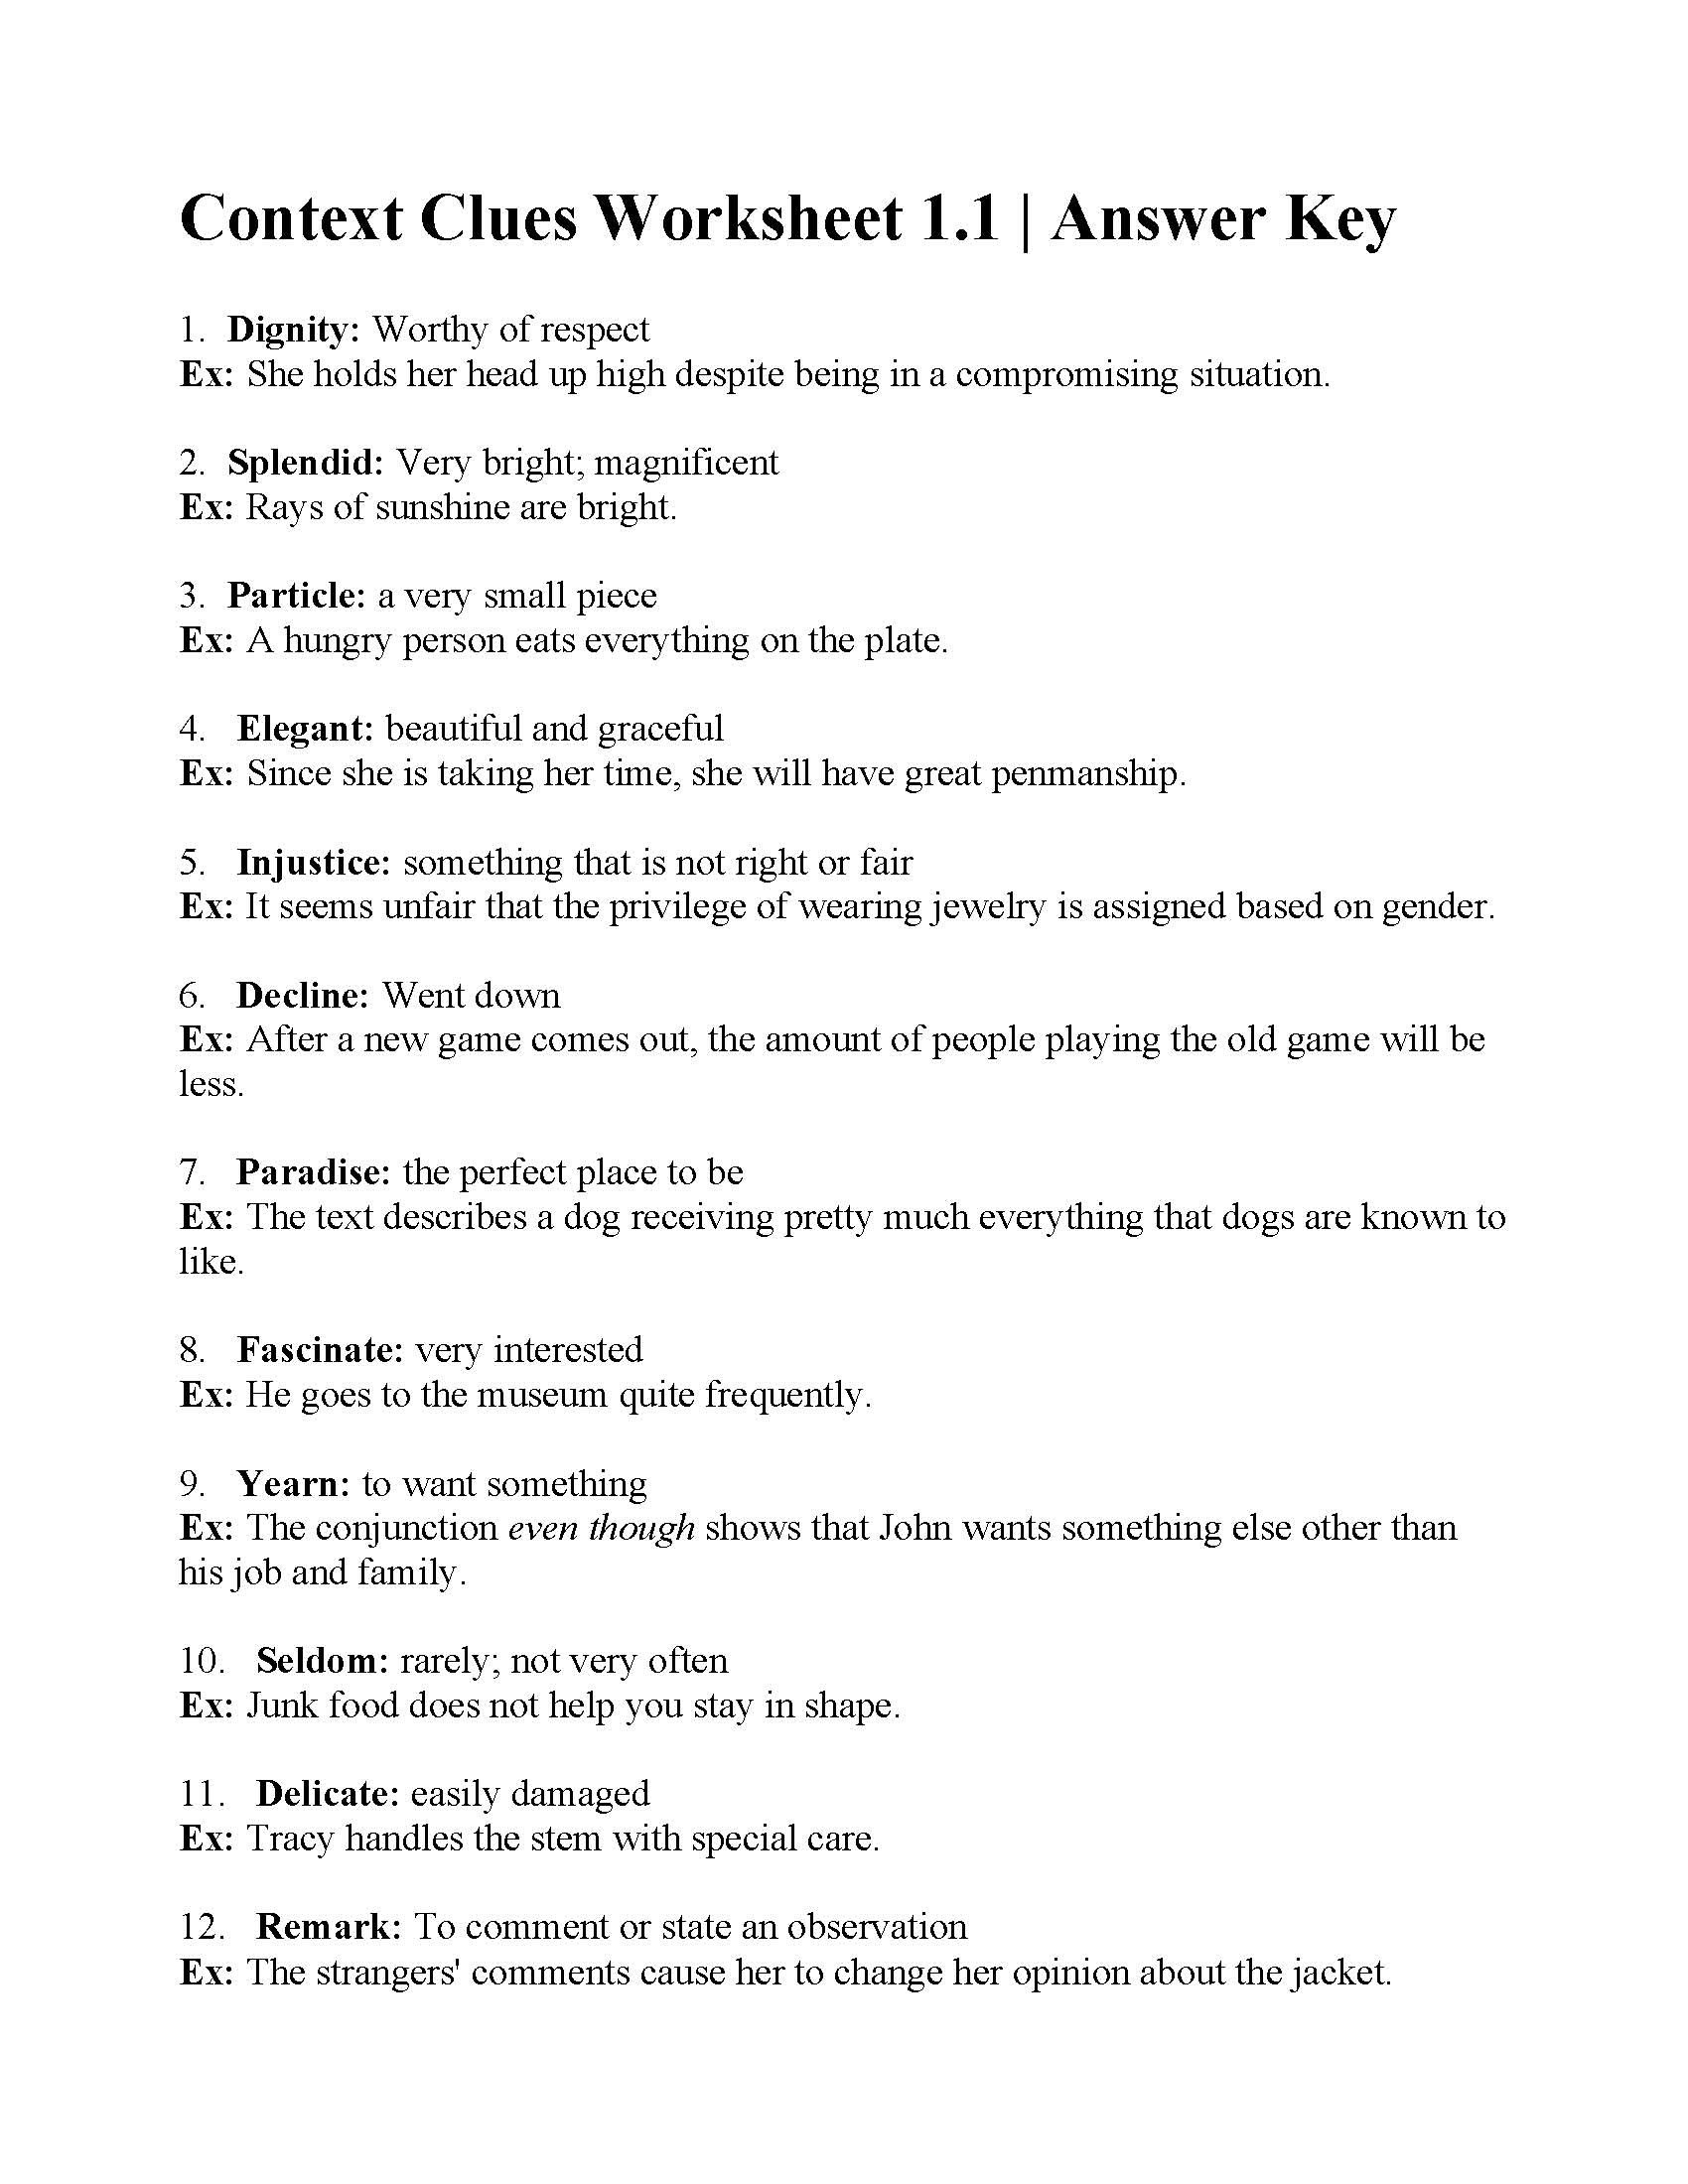 Context Clues Worksheets 4th Grade Teacher Worksheets Context Clues